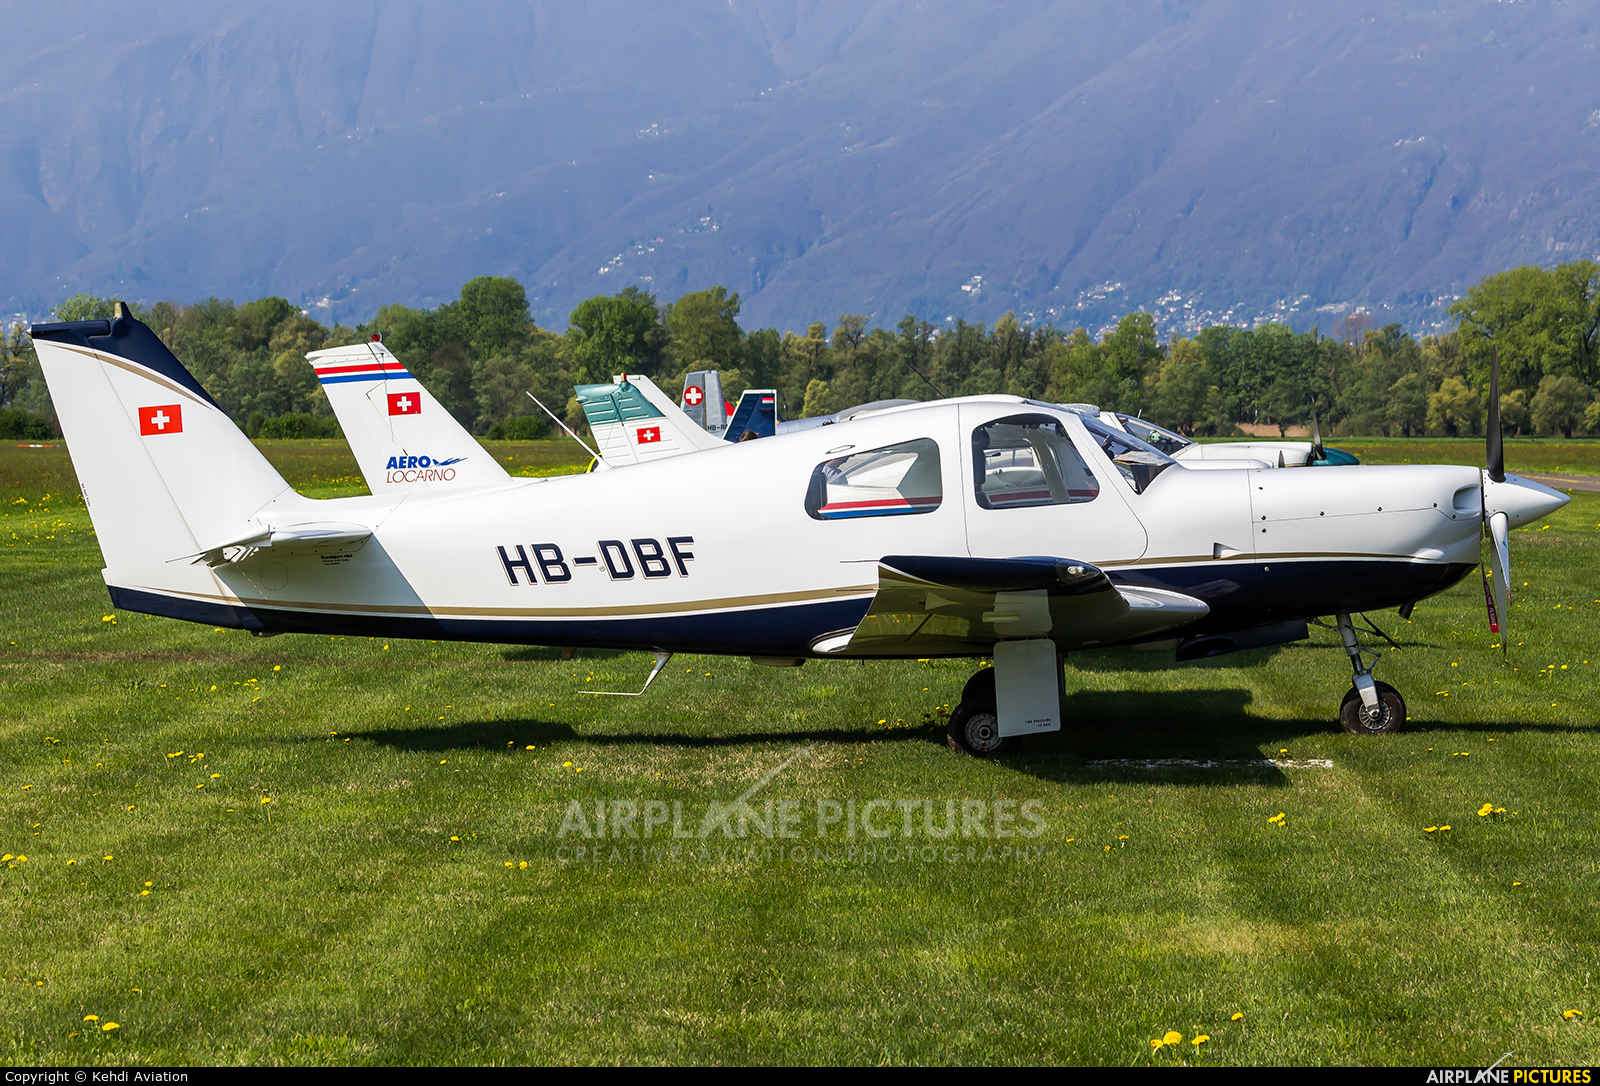 Private HB-DBF aircraft at Locarno